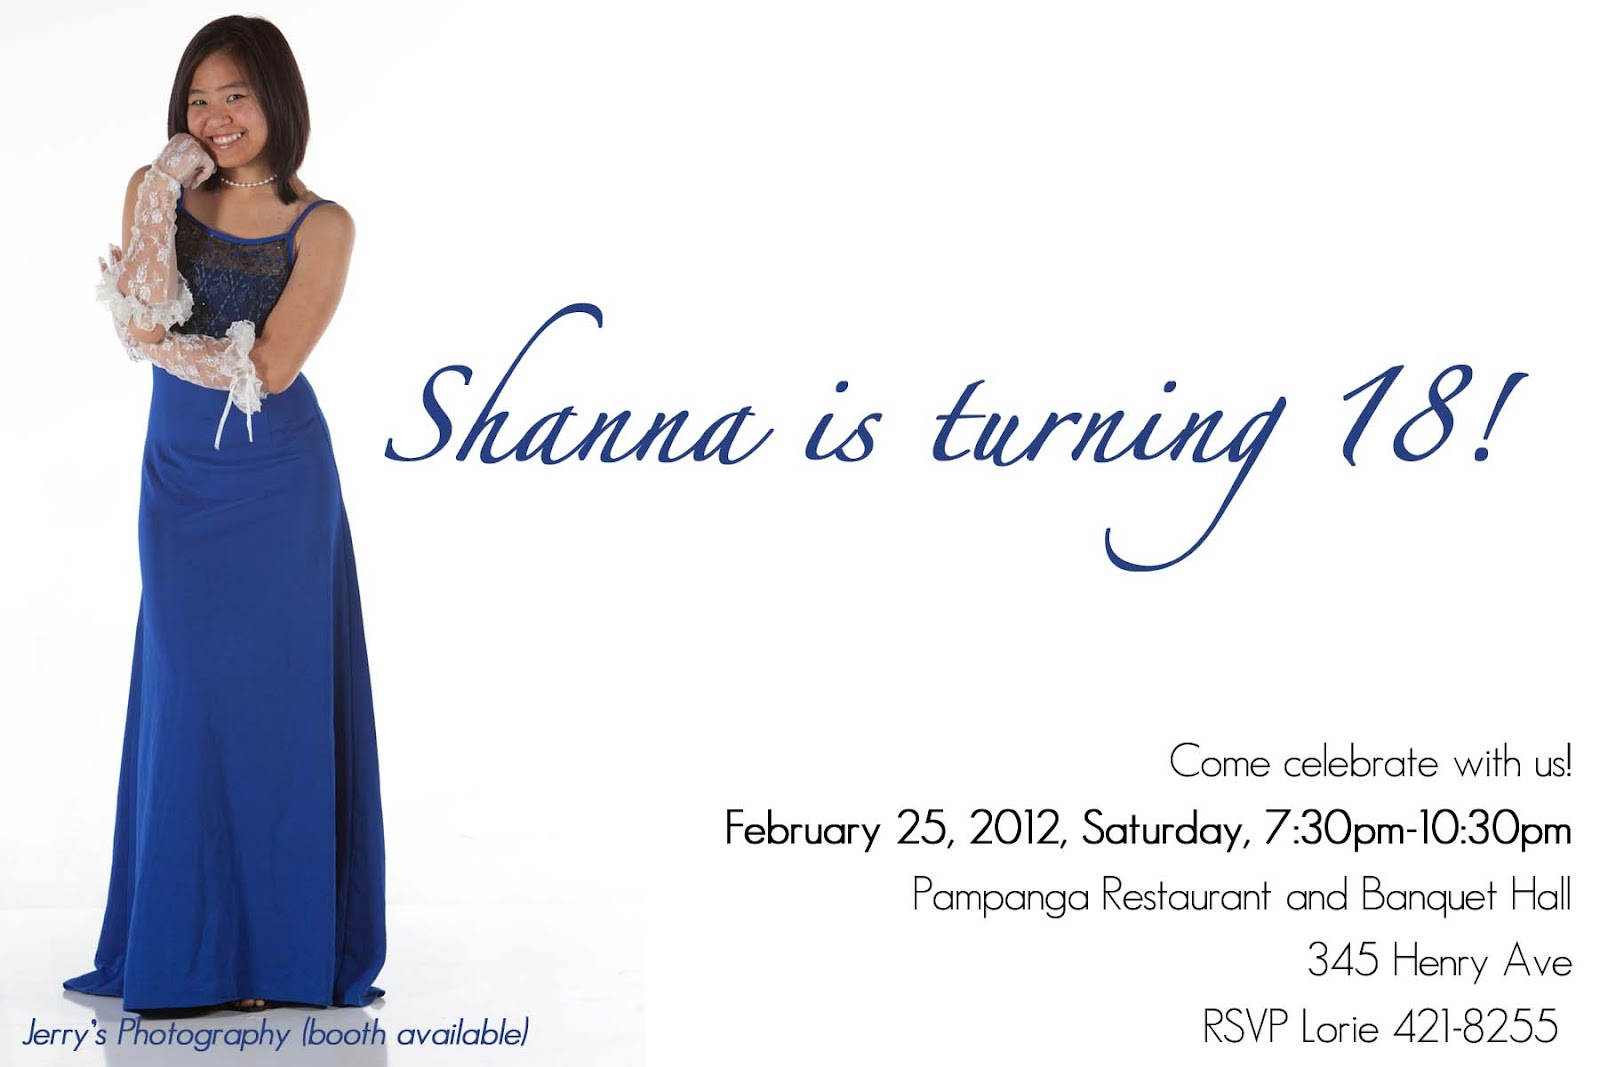 Mommy Designs Shannas 18th birthday invitation